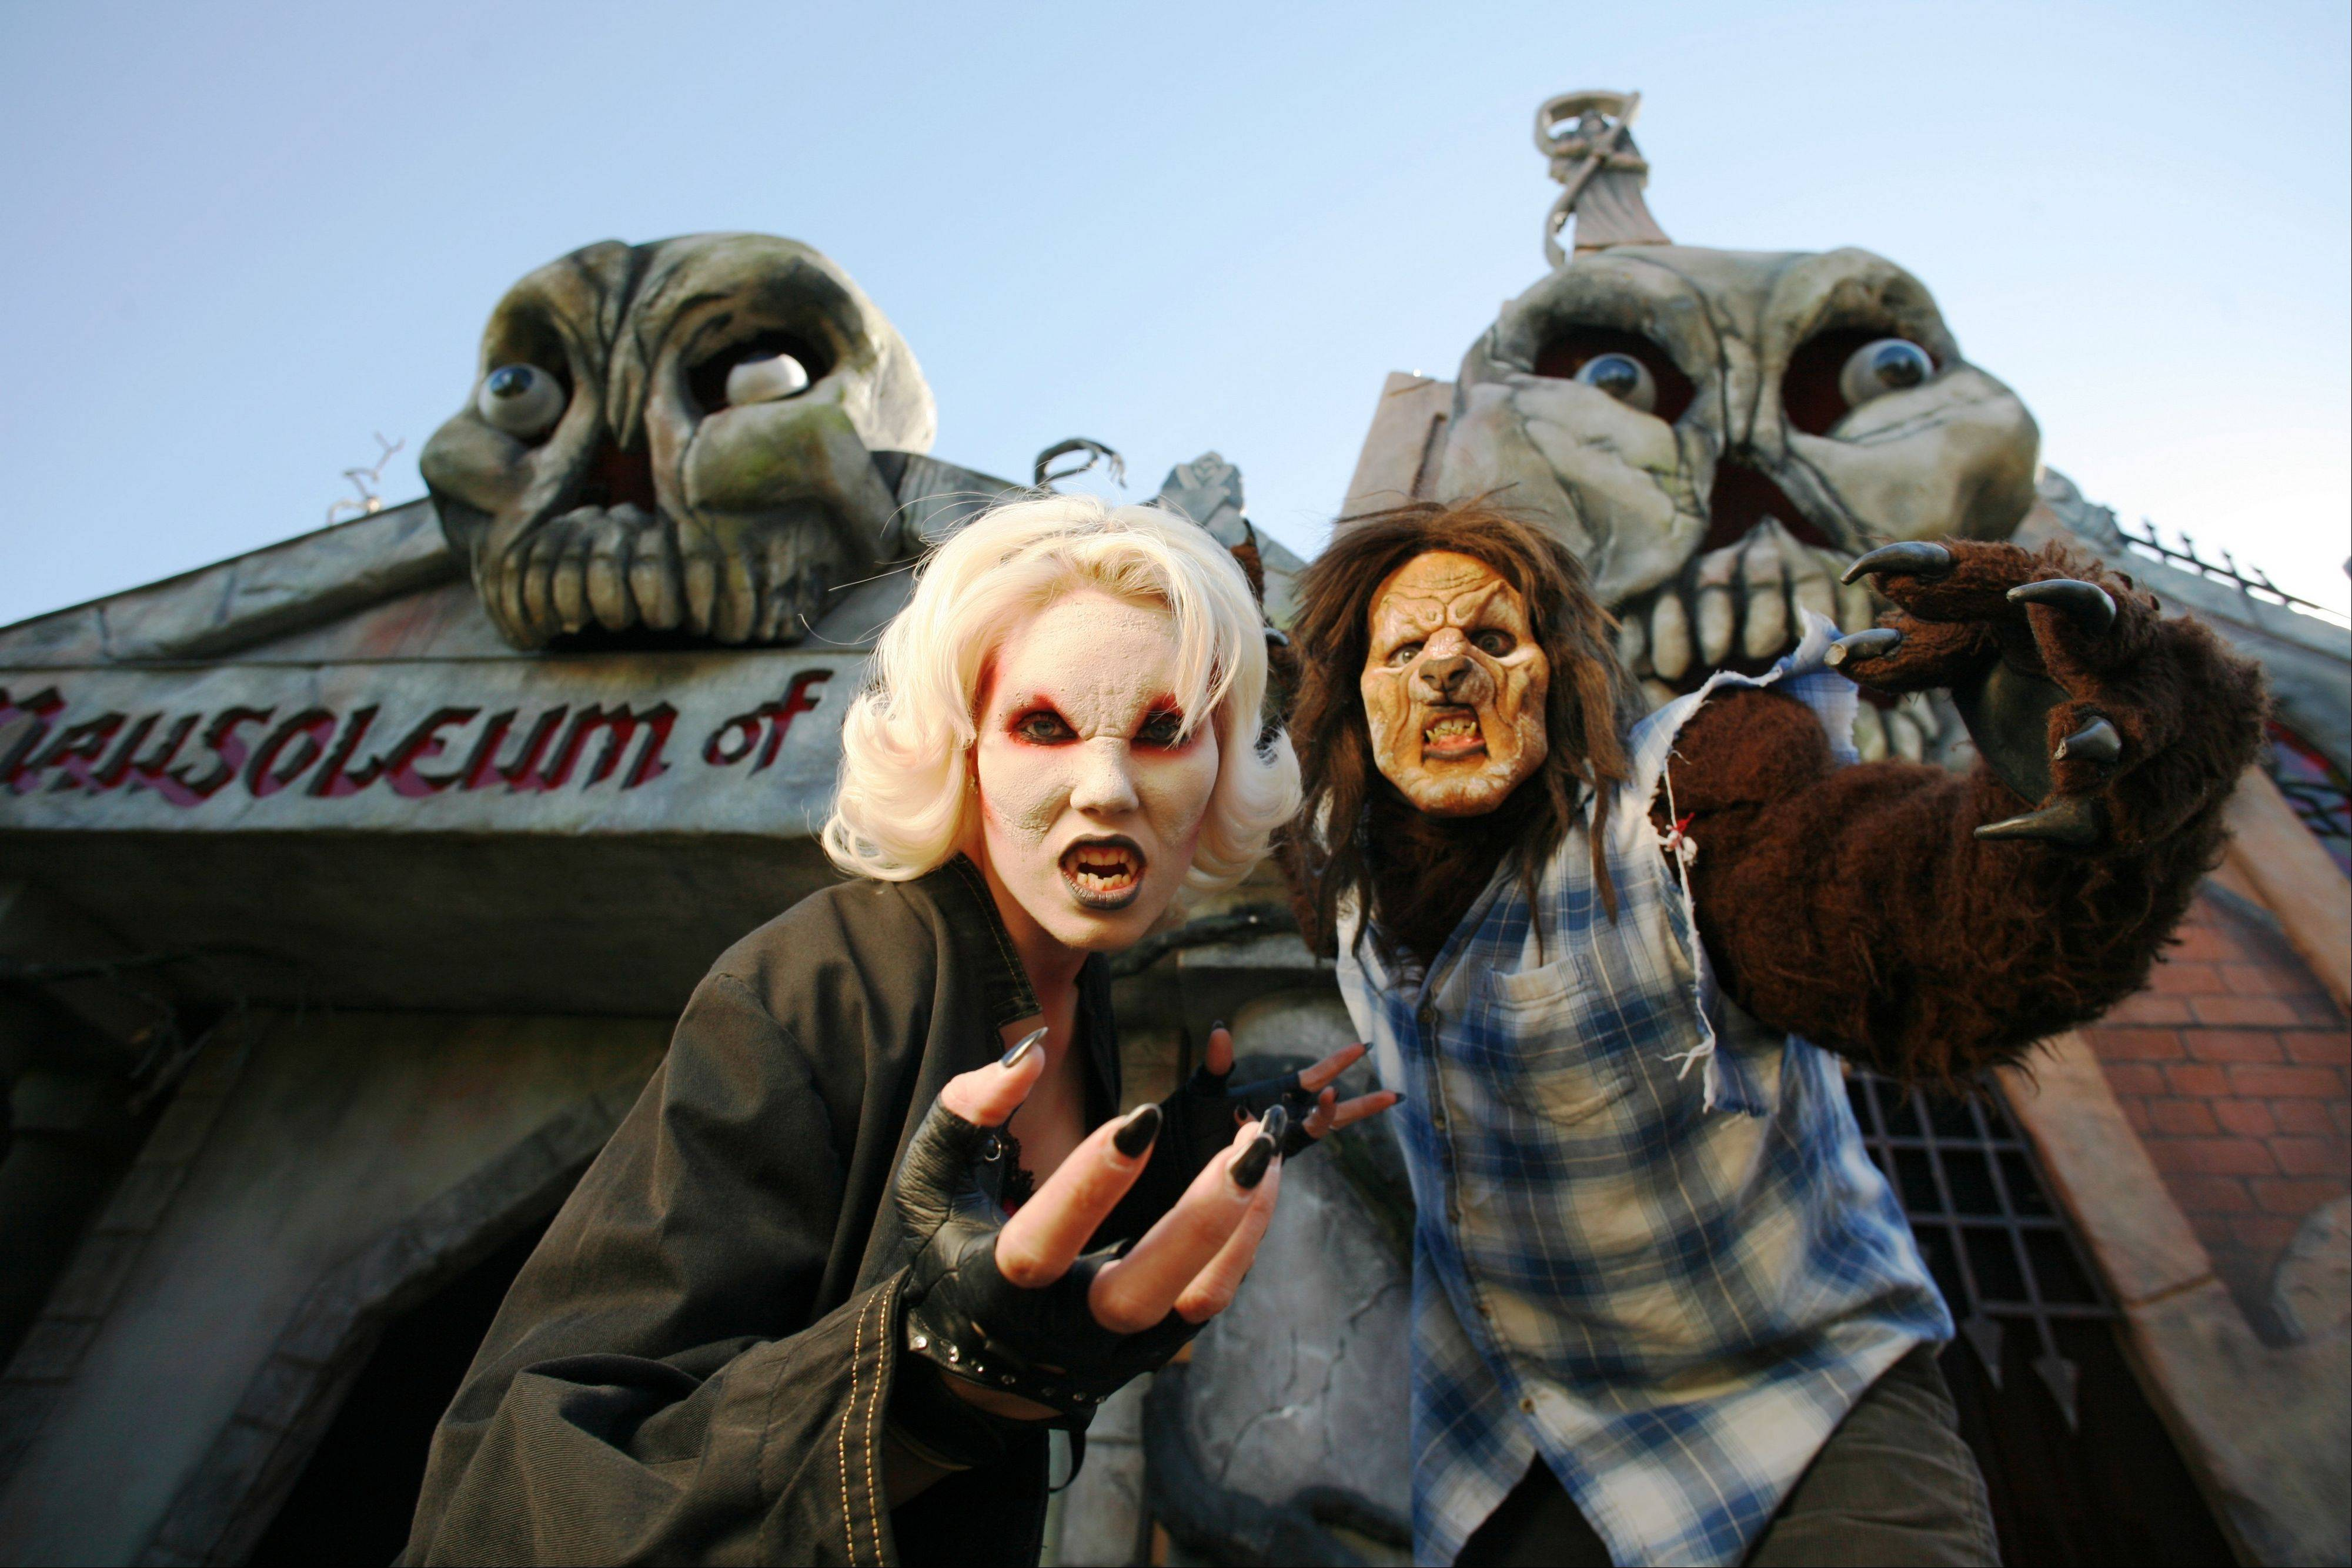 Those who dare can tour the Mausoleum of Terror when Frightfest opens today at Six Flags Great America in Gurnee.